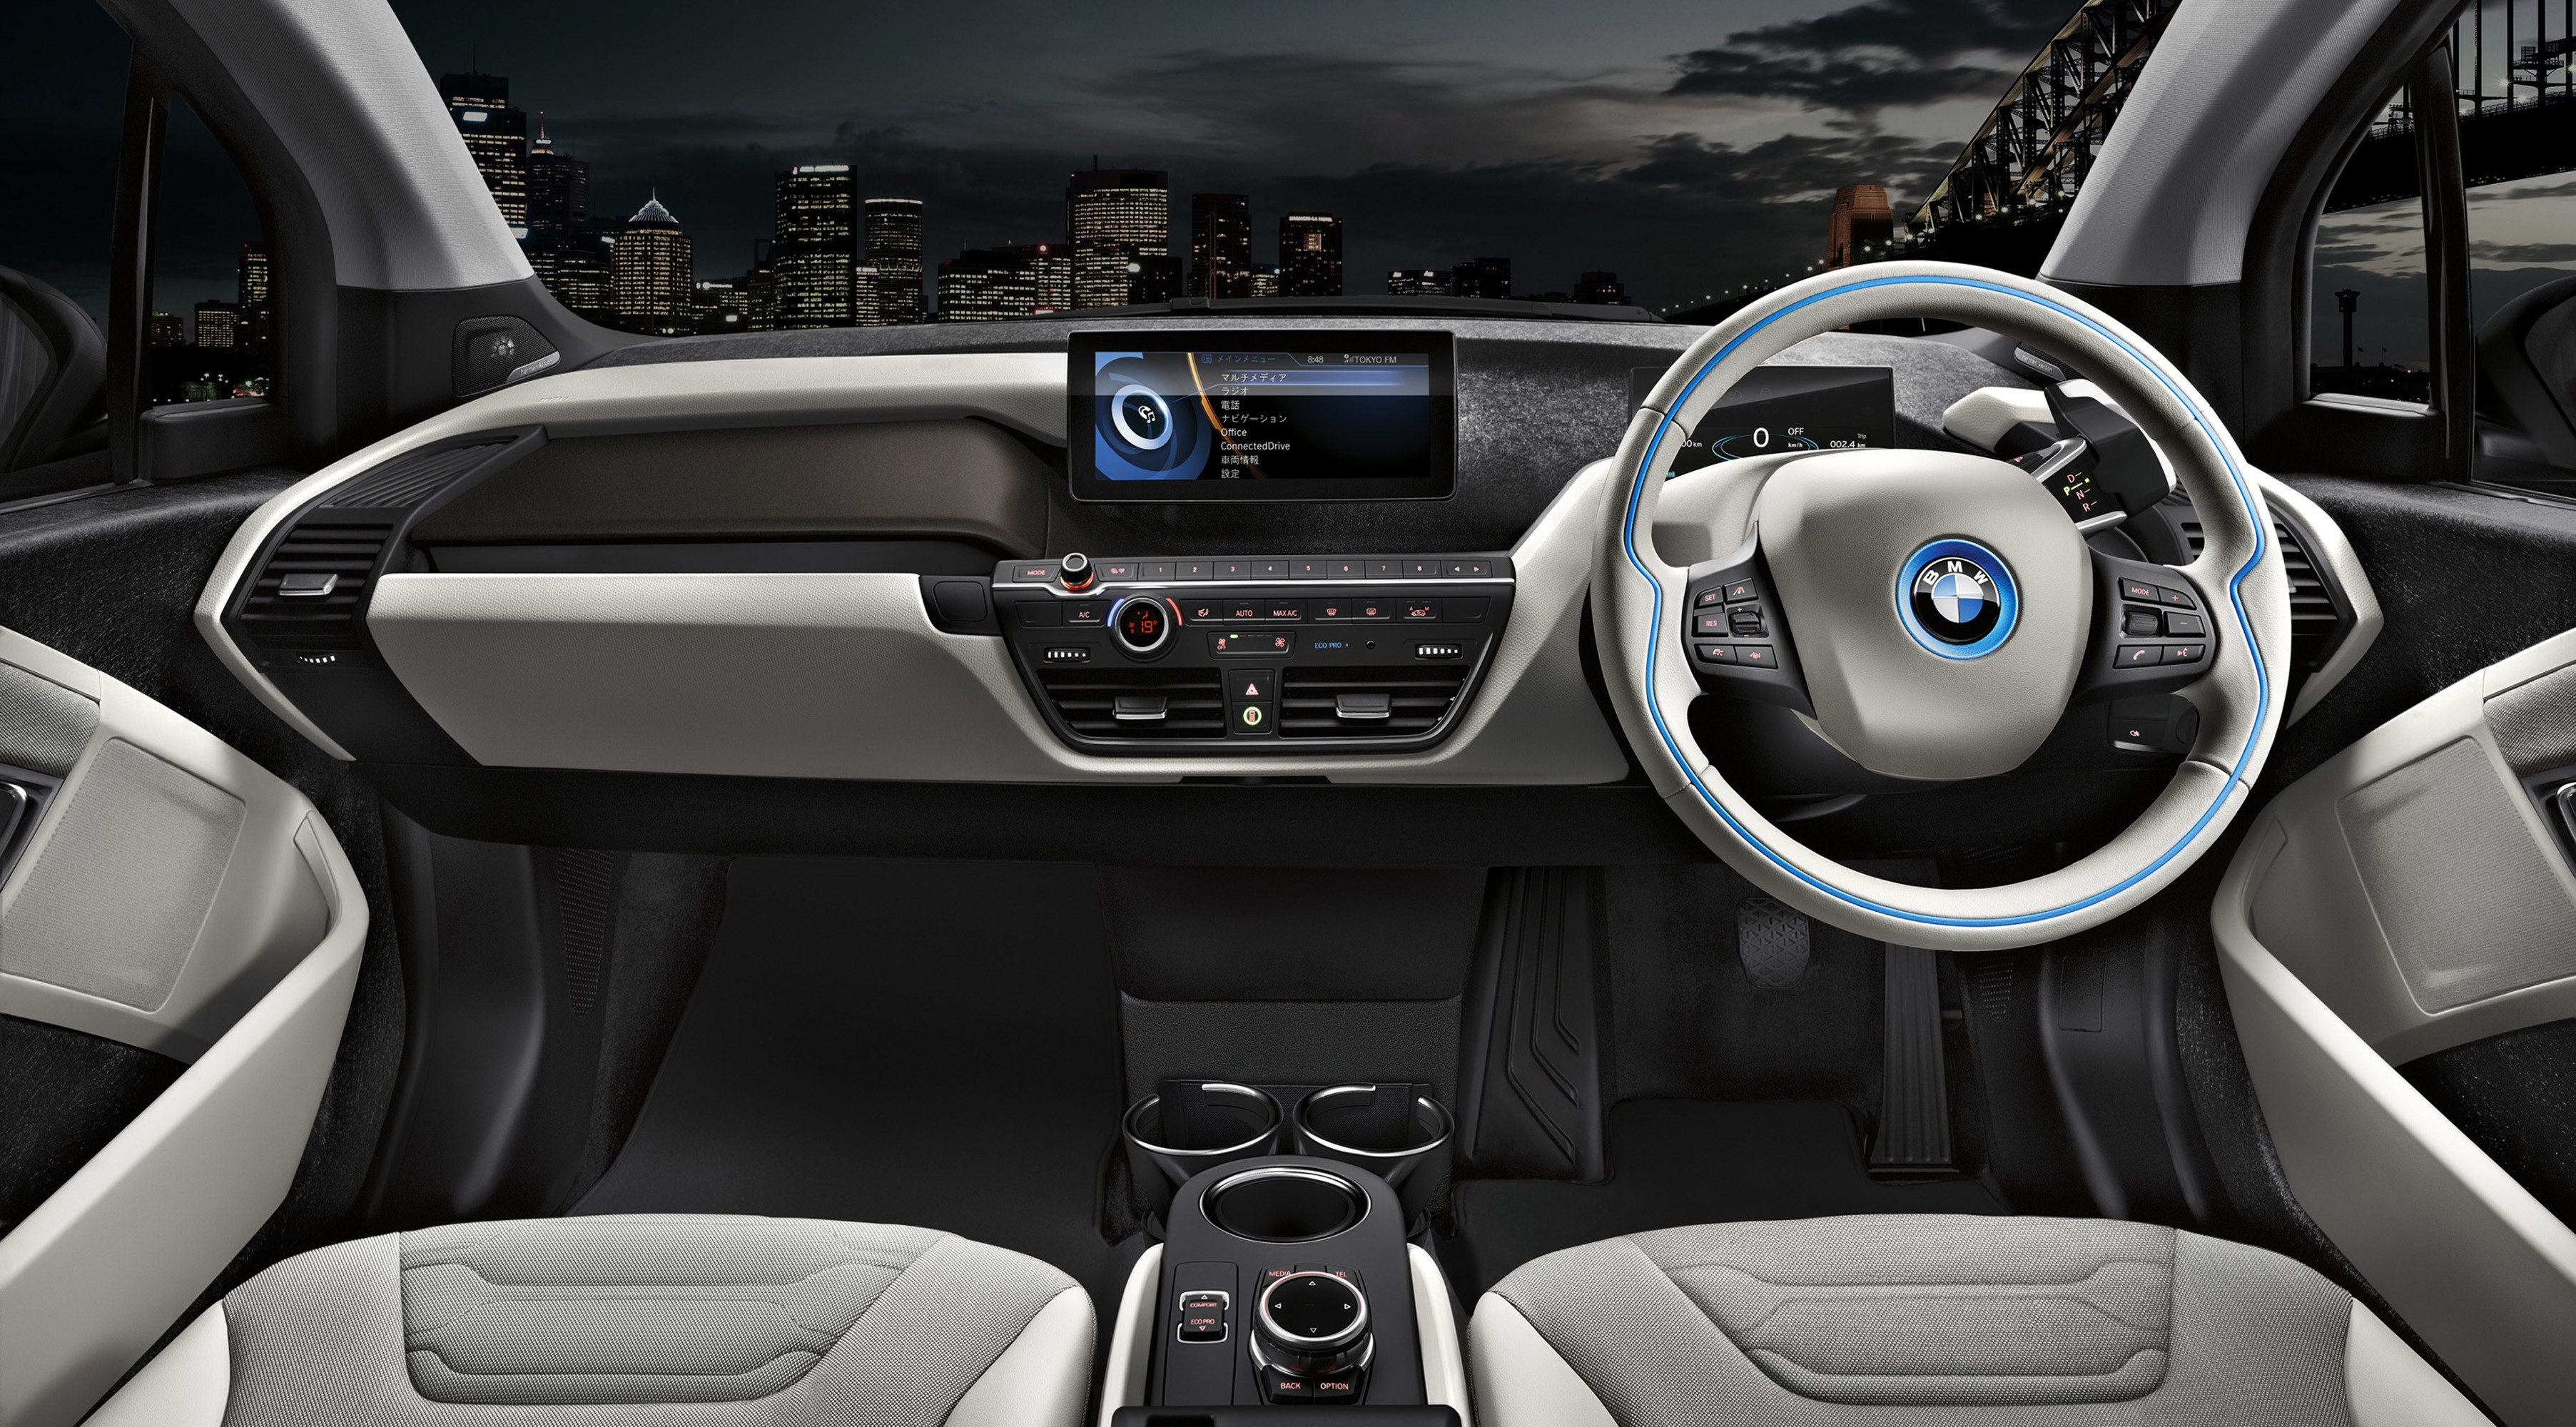 wallpaper bmw i3 carbonight electric cars city cars interior cars bikes 10328 page 48. Black Bedroom Furniture Sets. Home Design Ideas